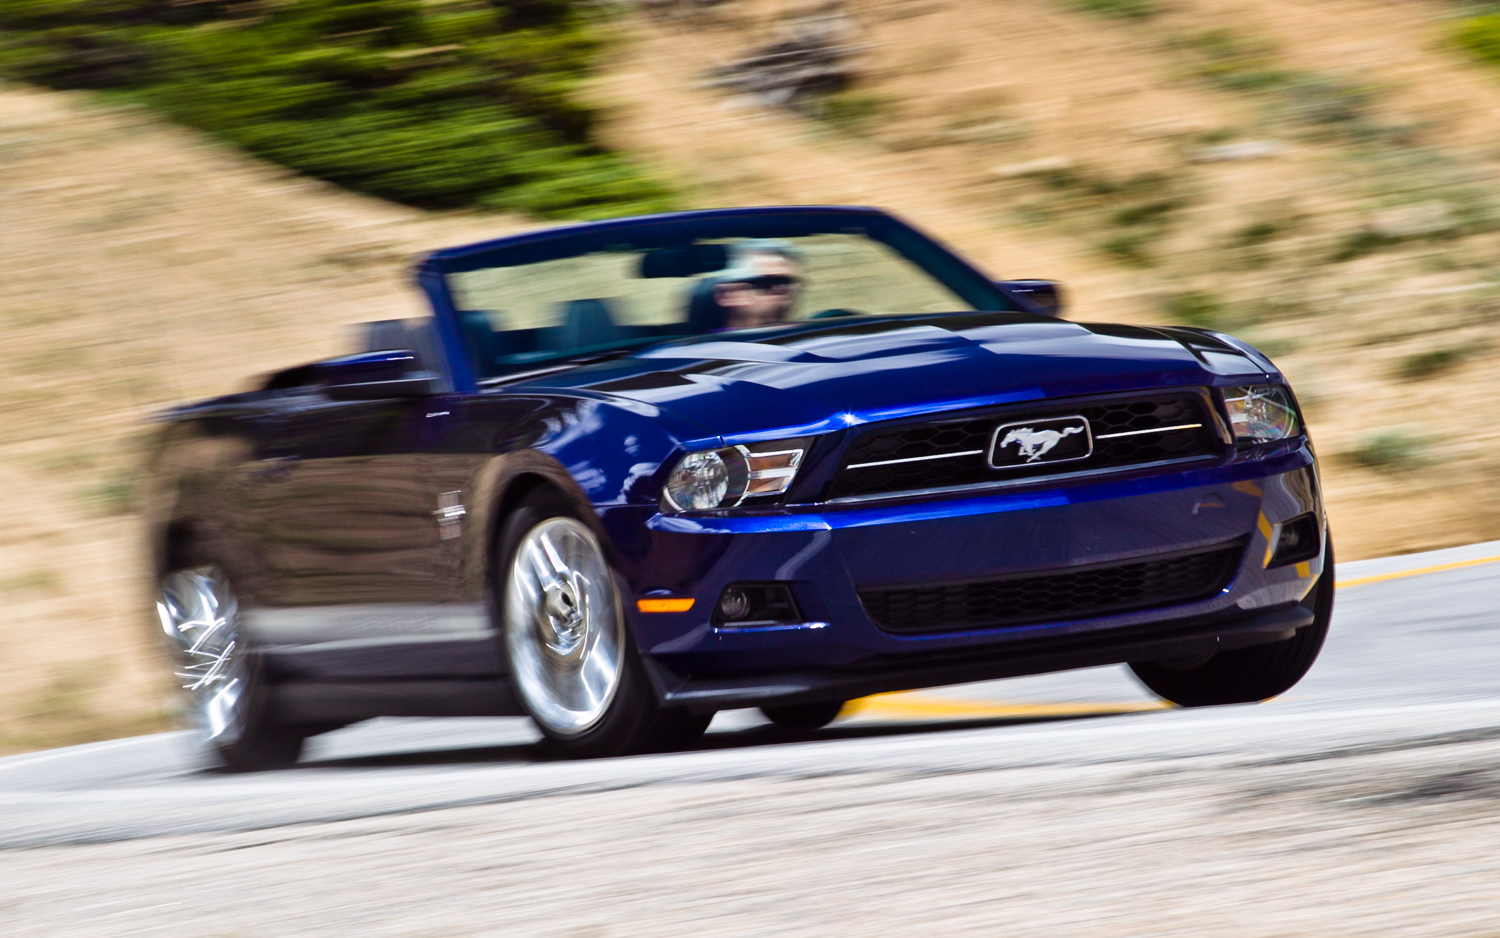 Three Way Chevrolet >> First Test: 2012 Ford Mustang V-6 Convertible - MotorTrend